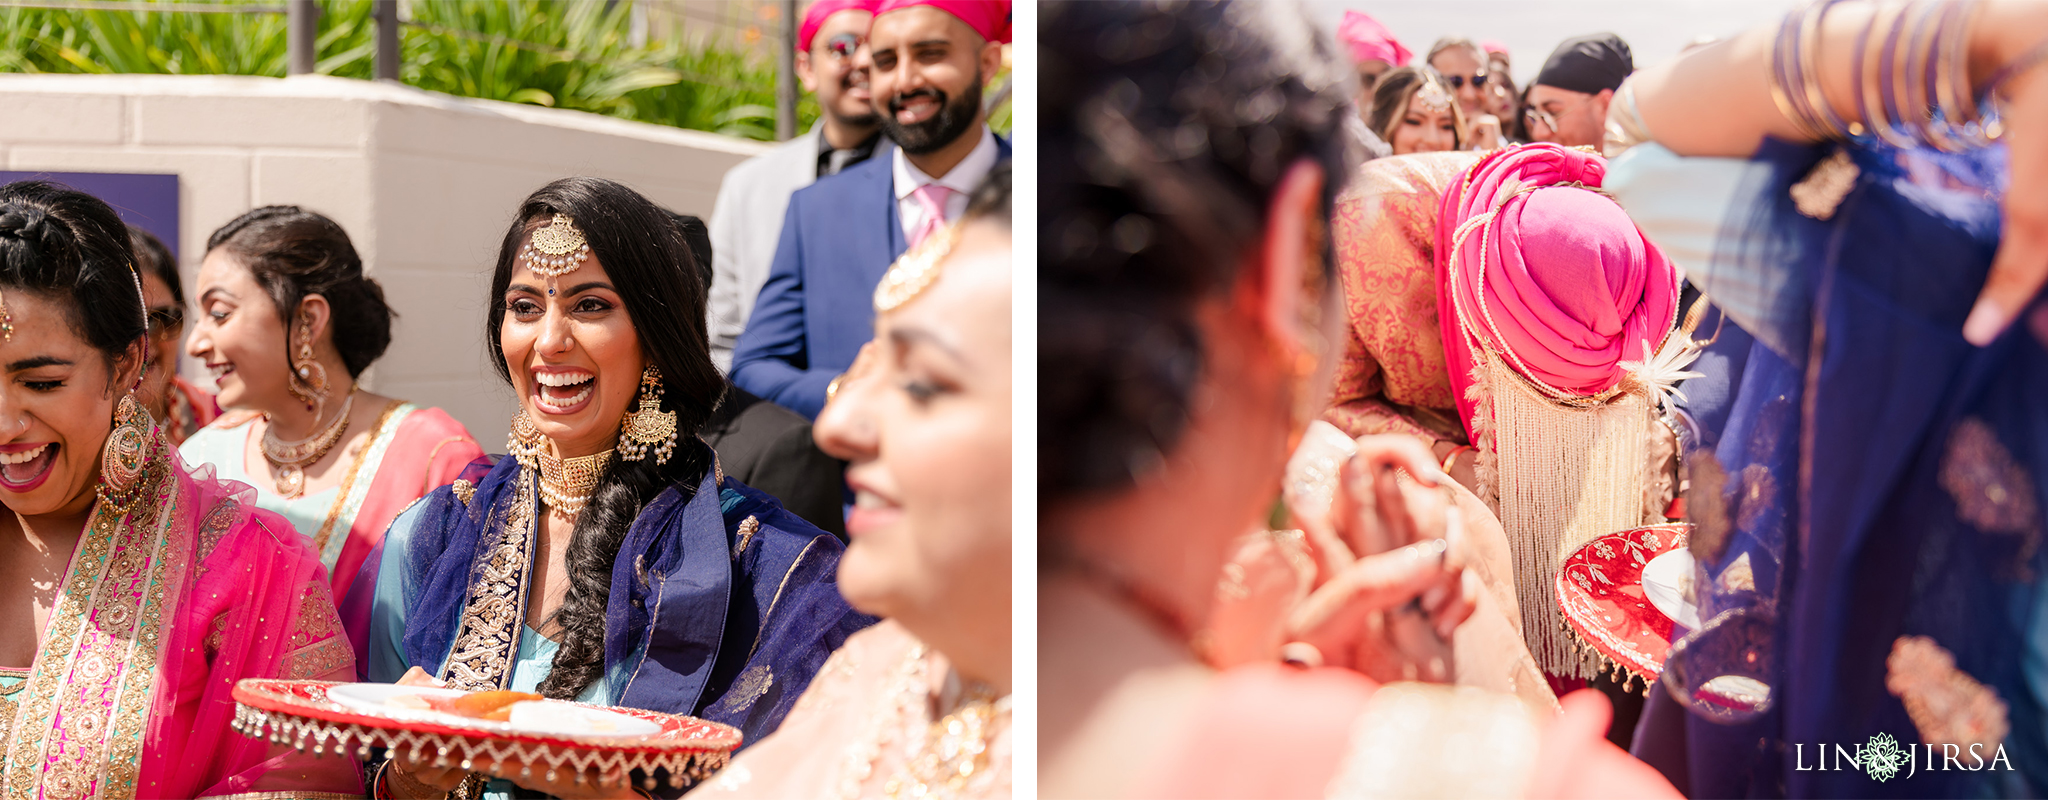 11 Coronado Resort and Spa San Diego Punjabi Wedding Photography